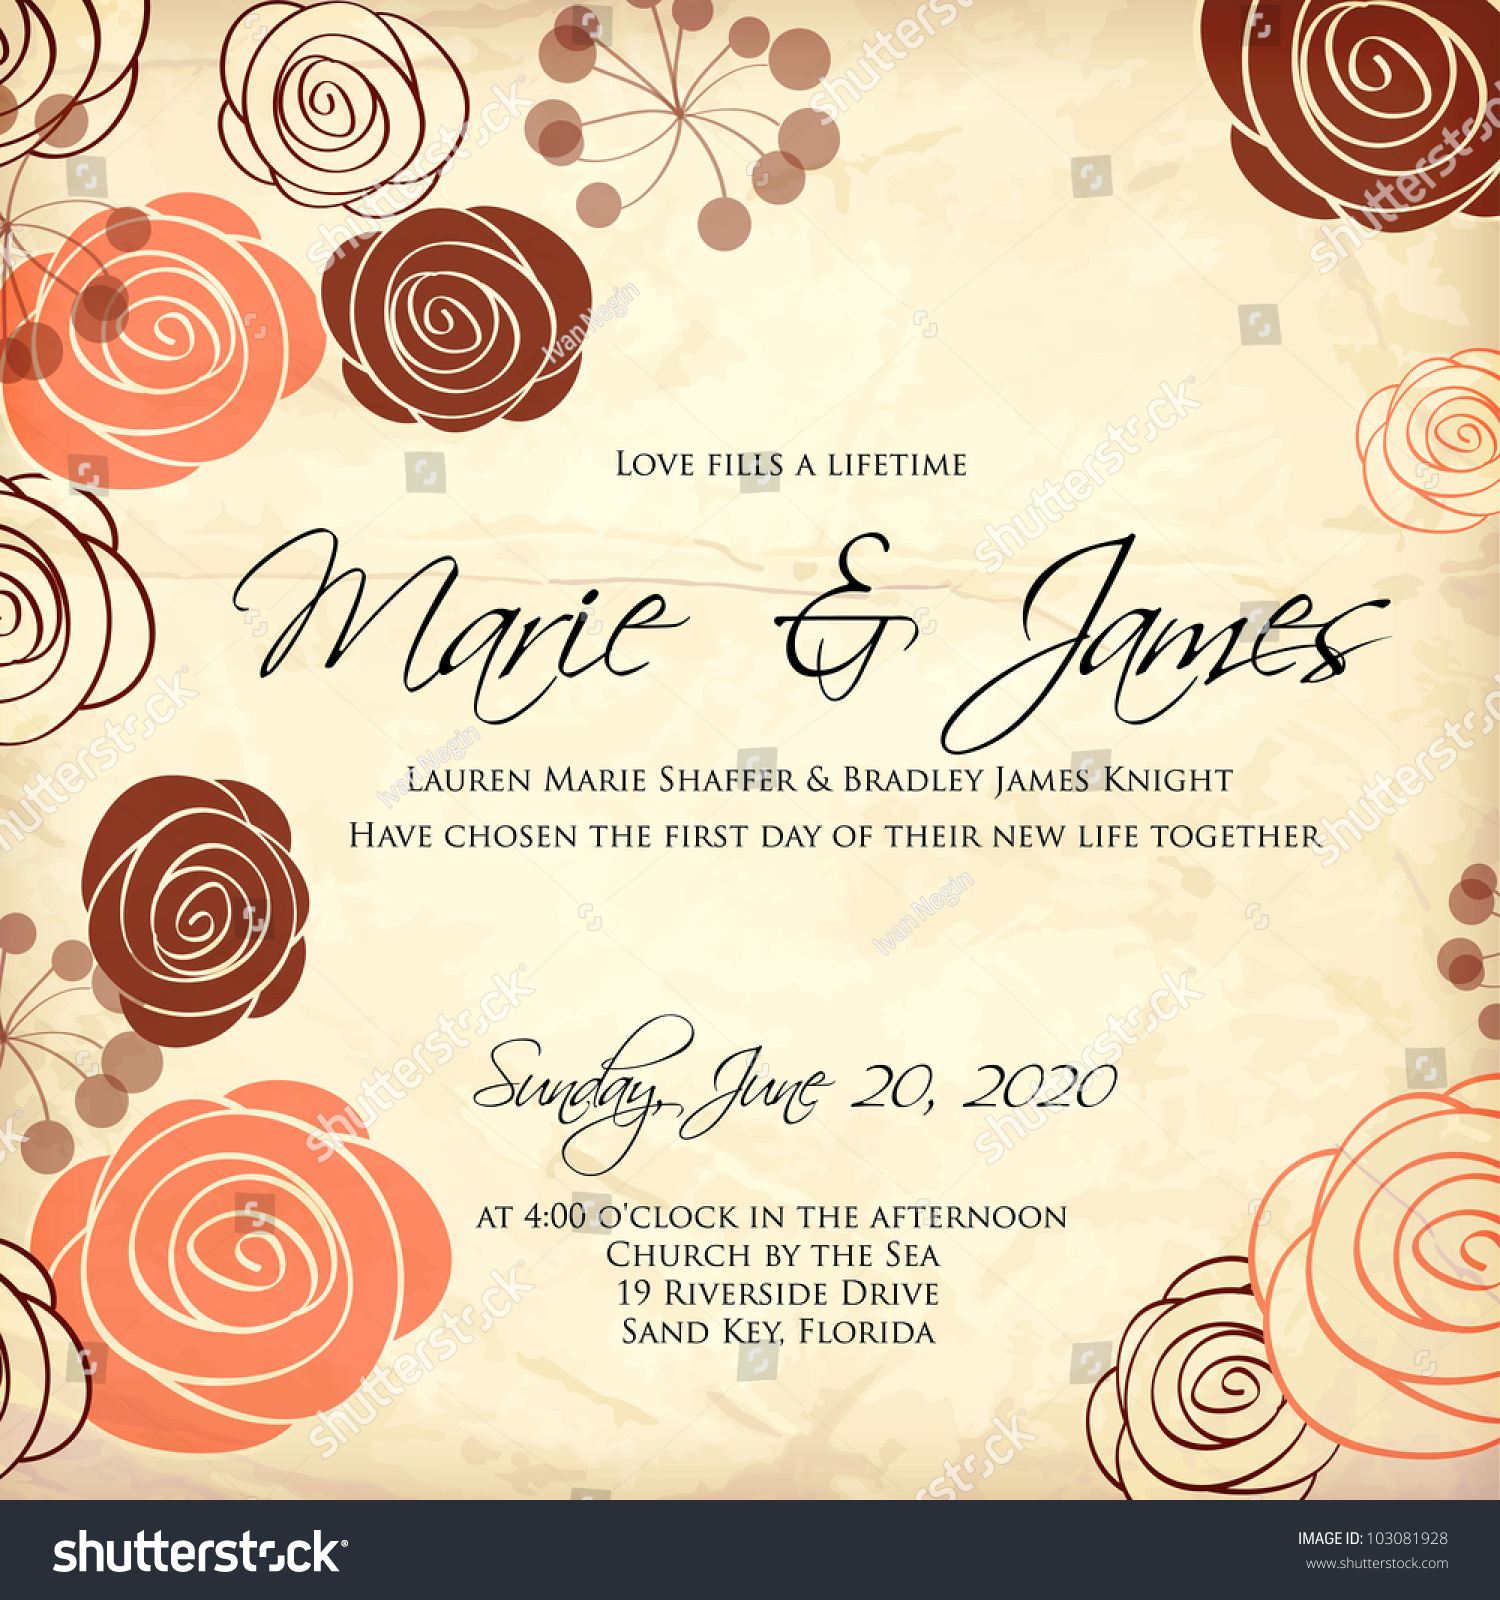 Wedding Card Invitation Abstract Floral Background Stock ...